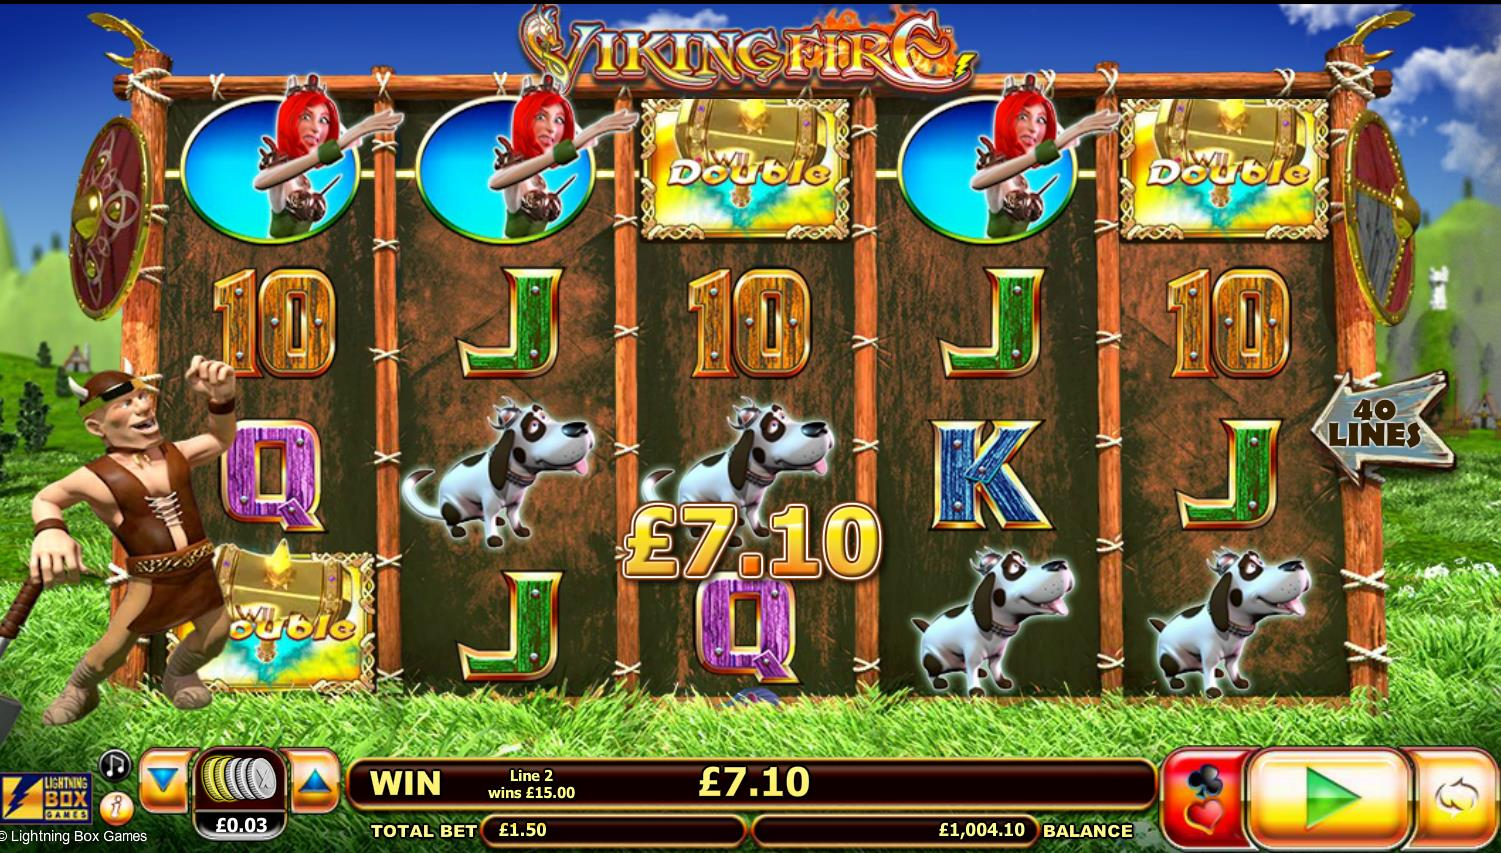 Viking Fire Slot Game